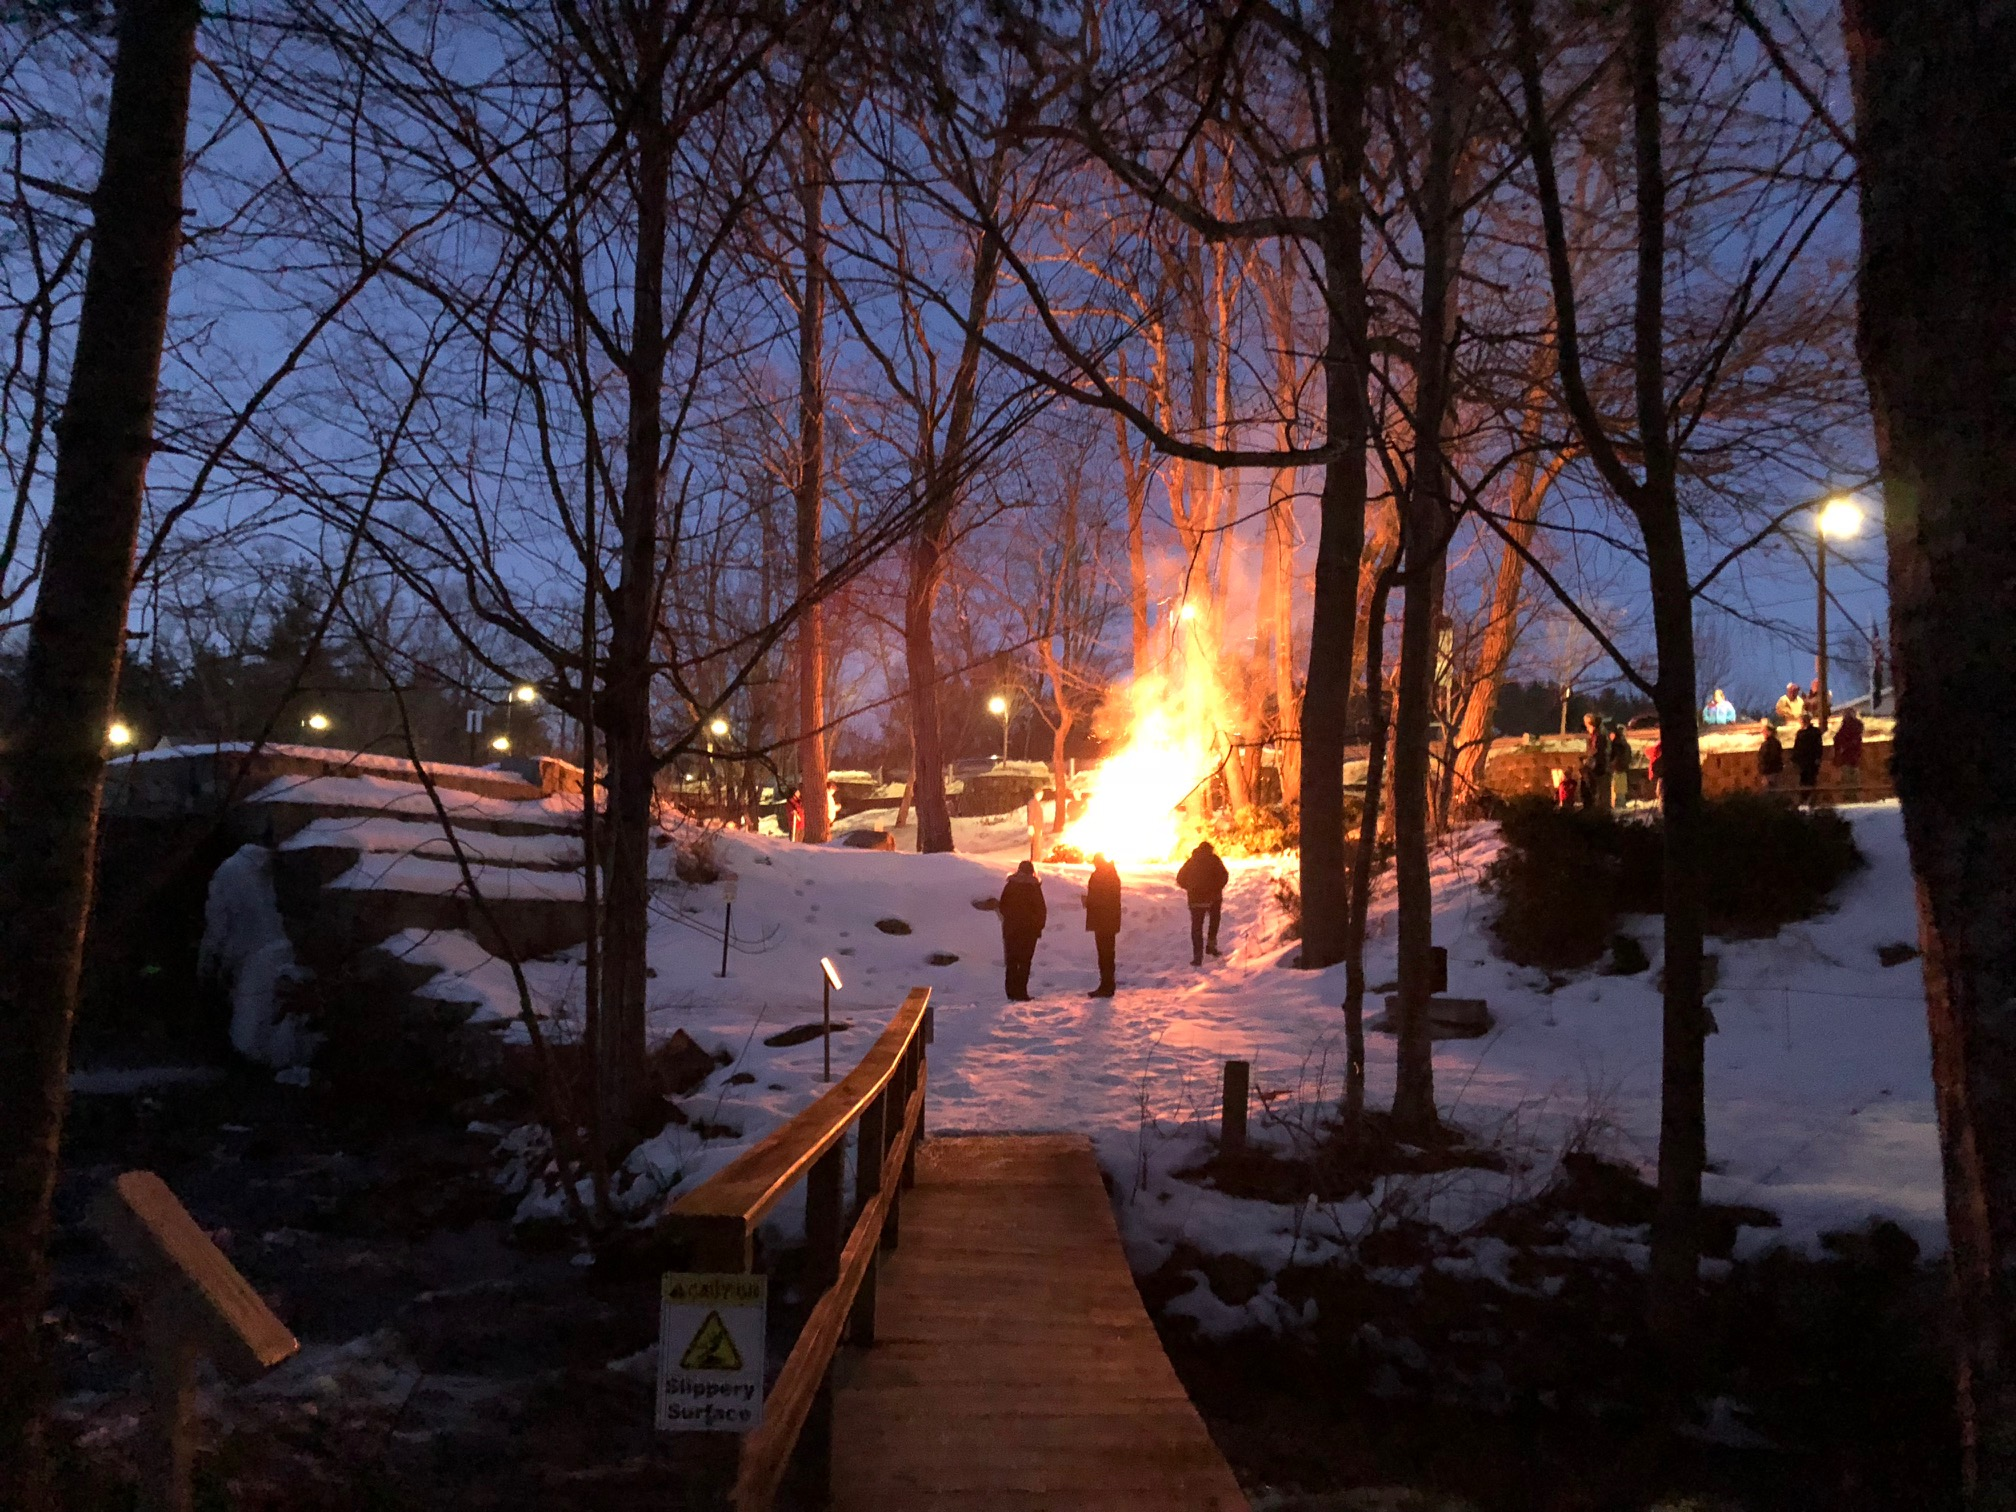 3rd Annual Light the Night Bonfire, Chocorua River Dam Park 1/28/18